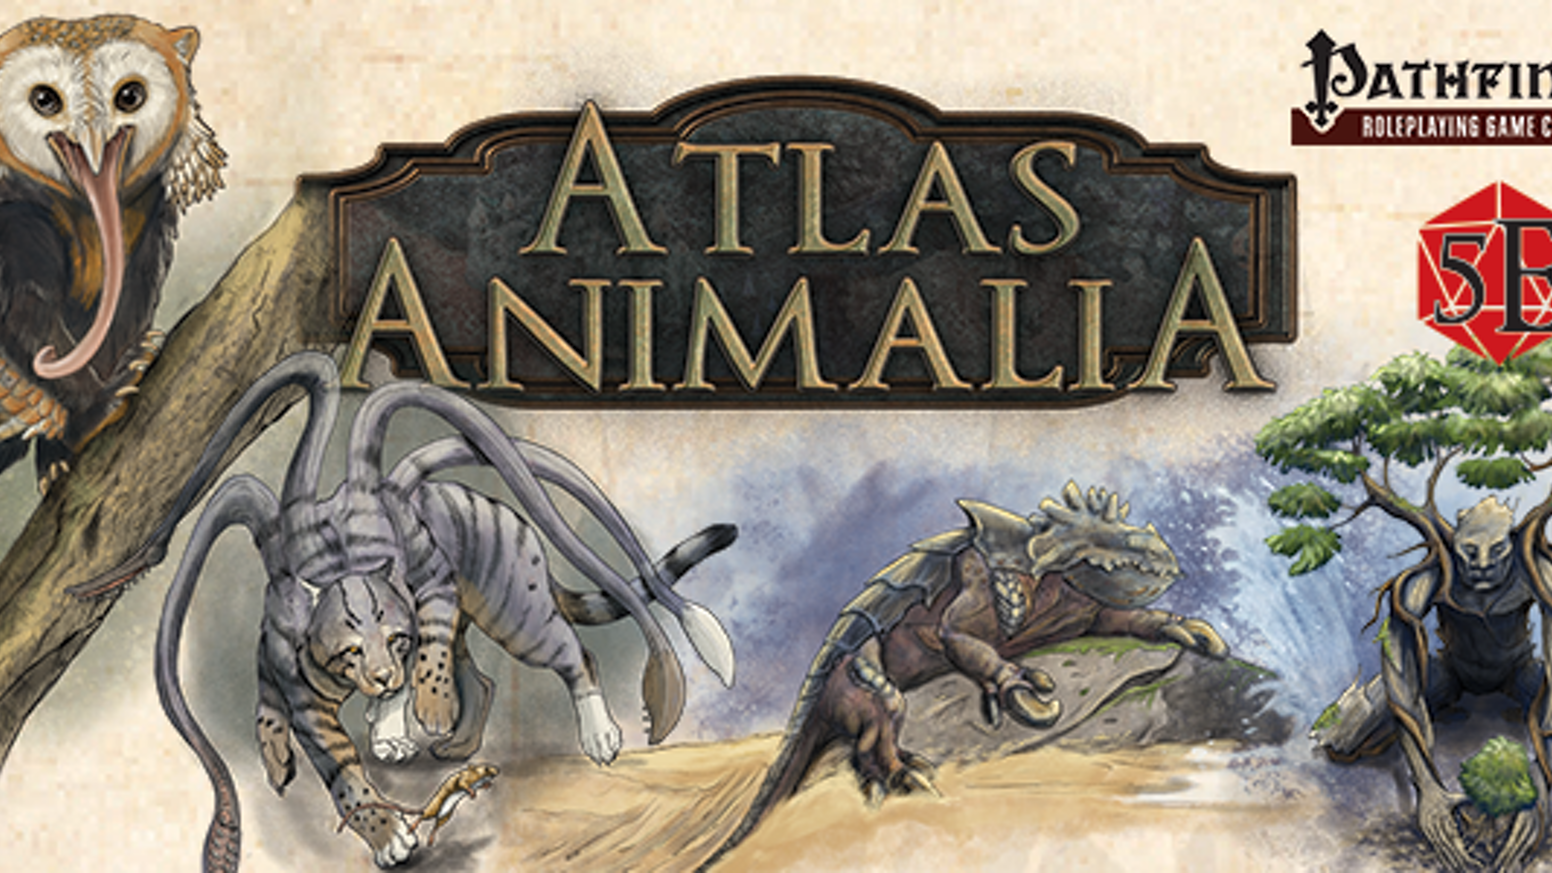 Atlas Animalia - A book of monster variants by Andreas